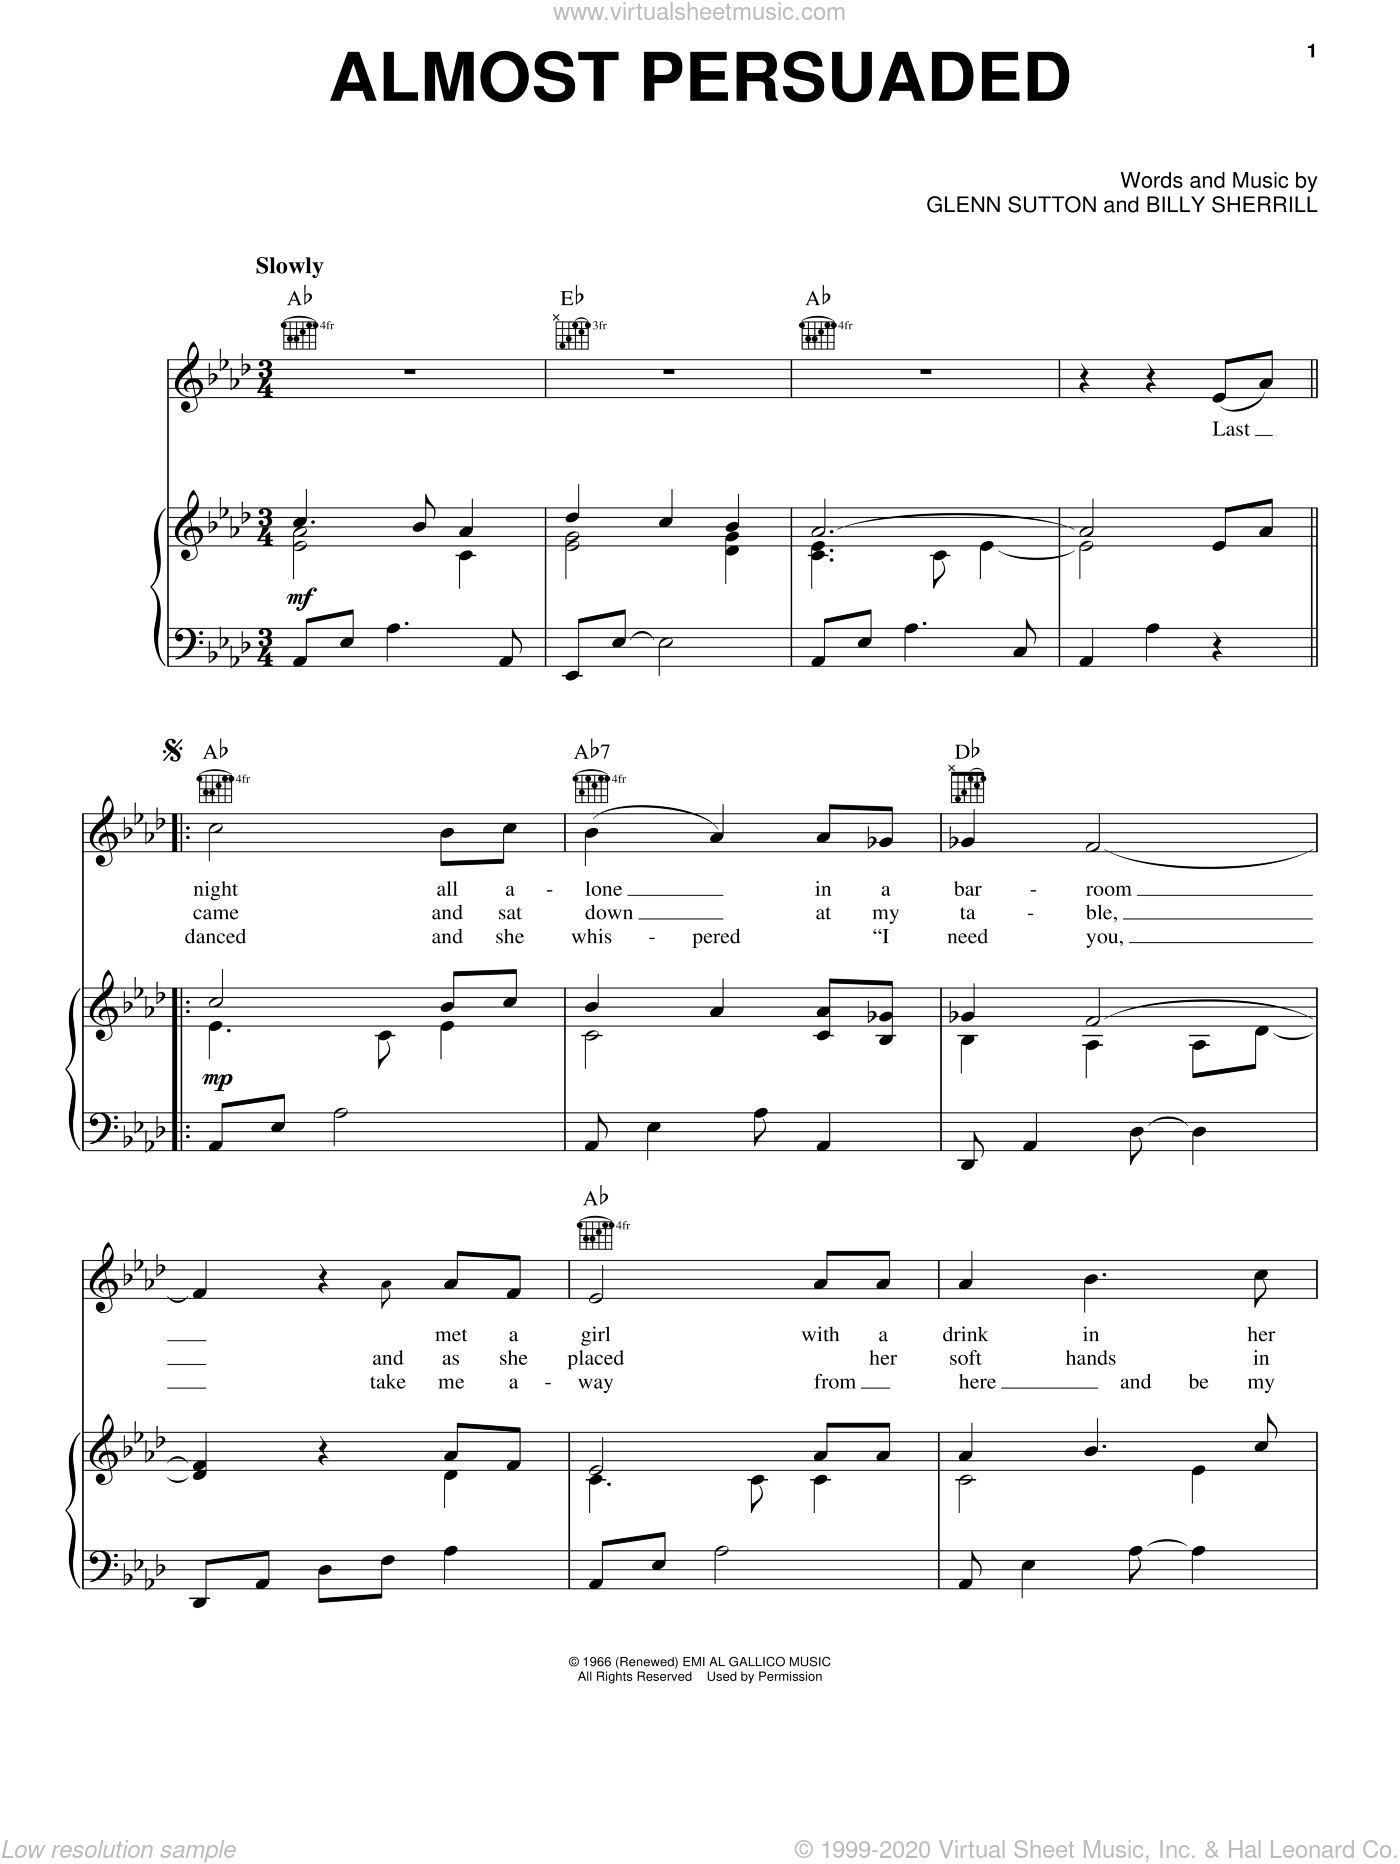 Almost Persuaded sheet music for voice, piano or guitar by David Houston, Ben Colder and Etta James, intermediate skill level